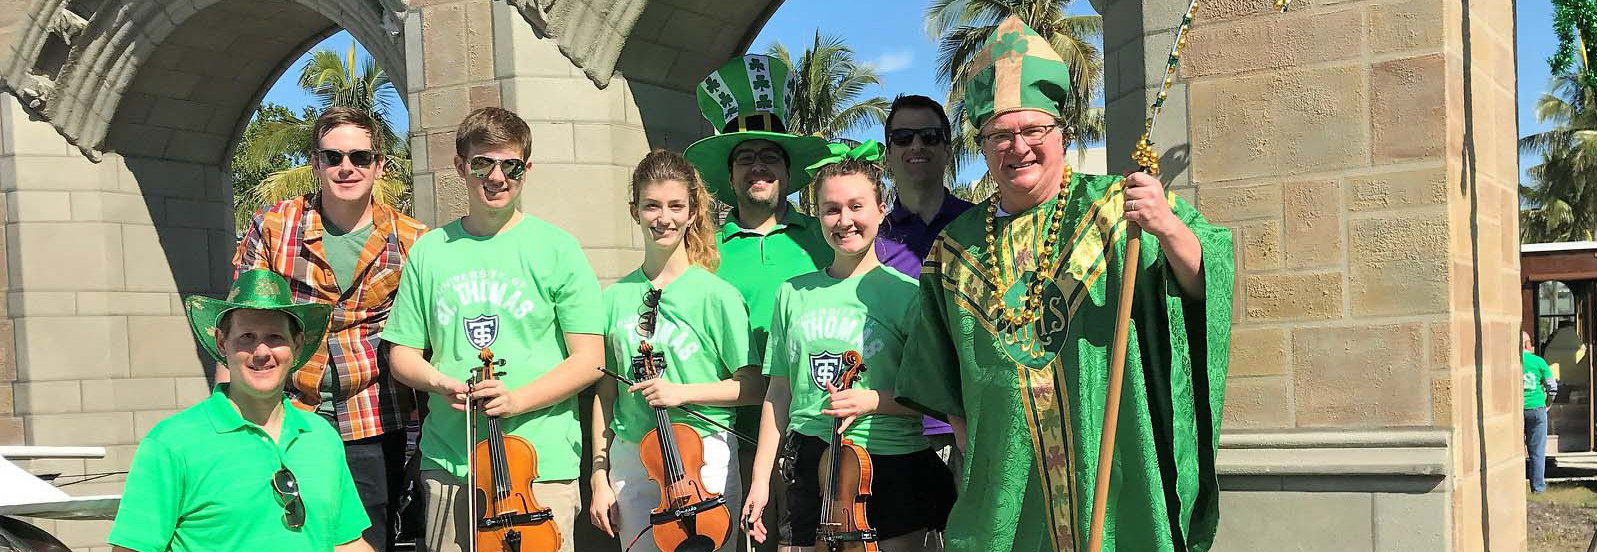 students and professors dressed in green for Naples St. Patrick's Day parade